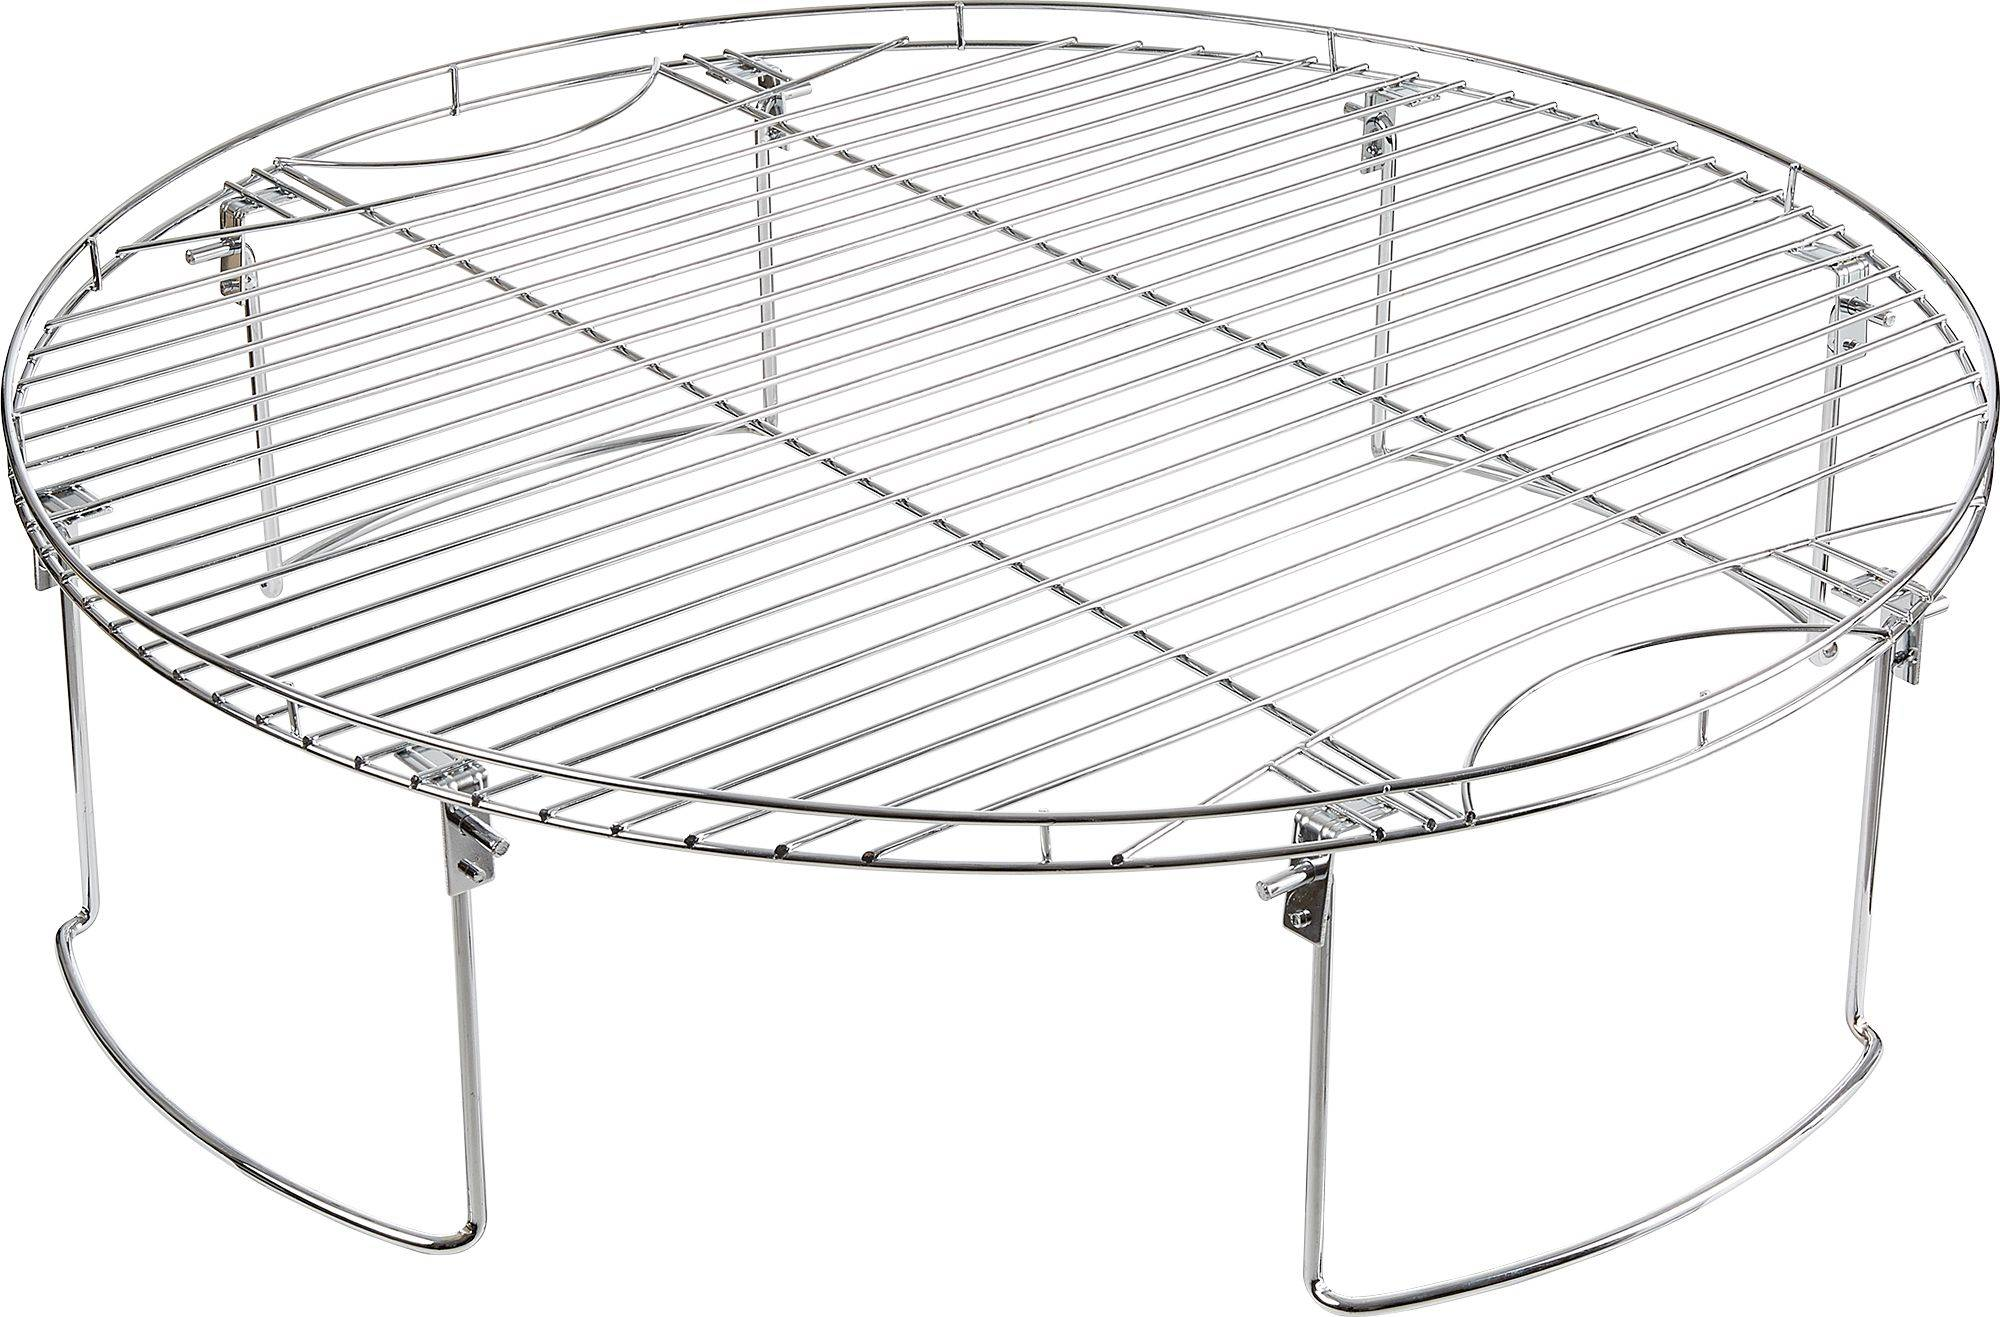 Field & Stream Large Cooking Grate, fire